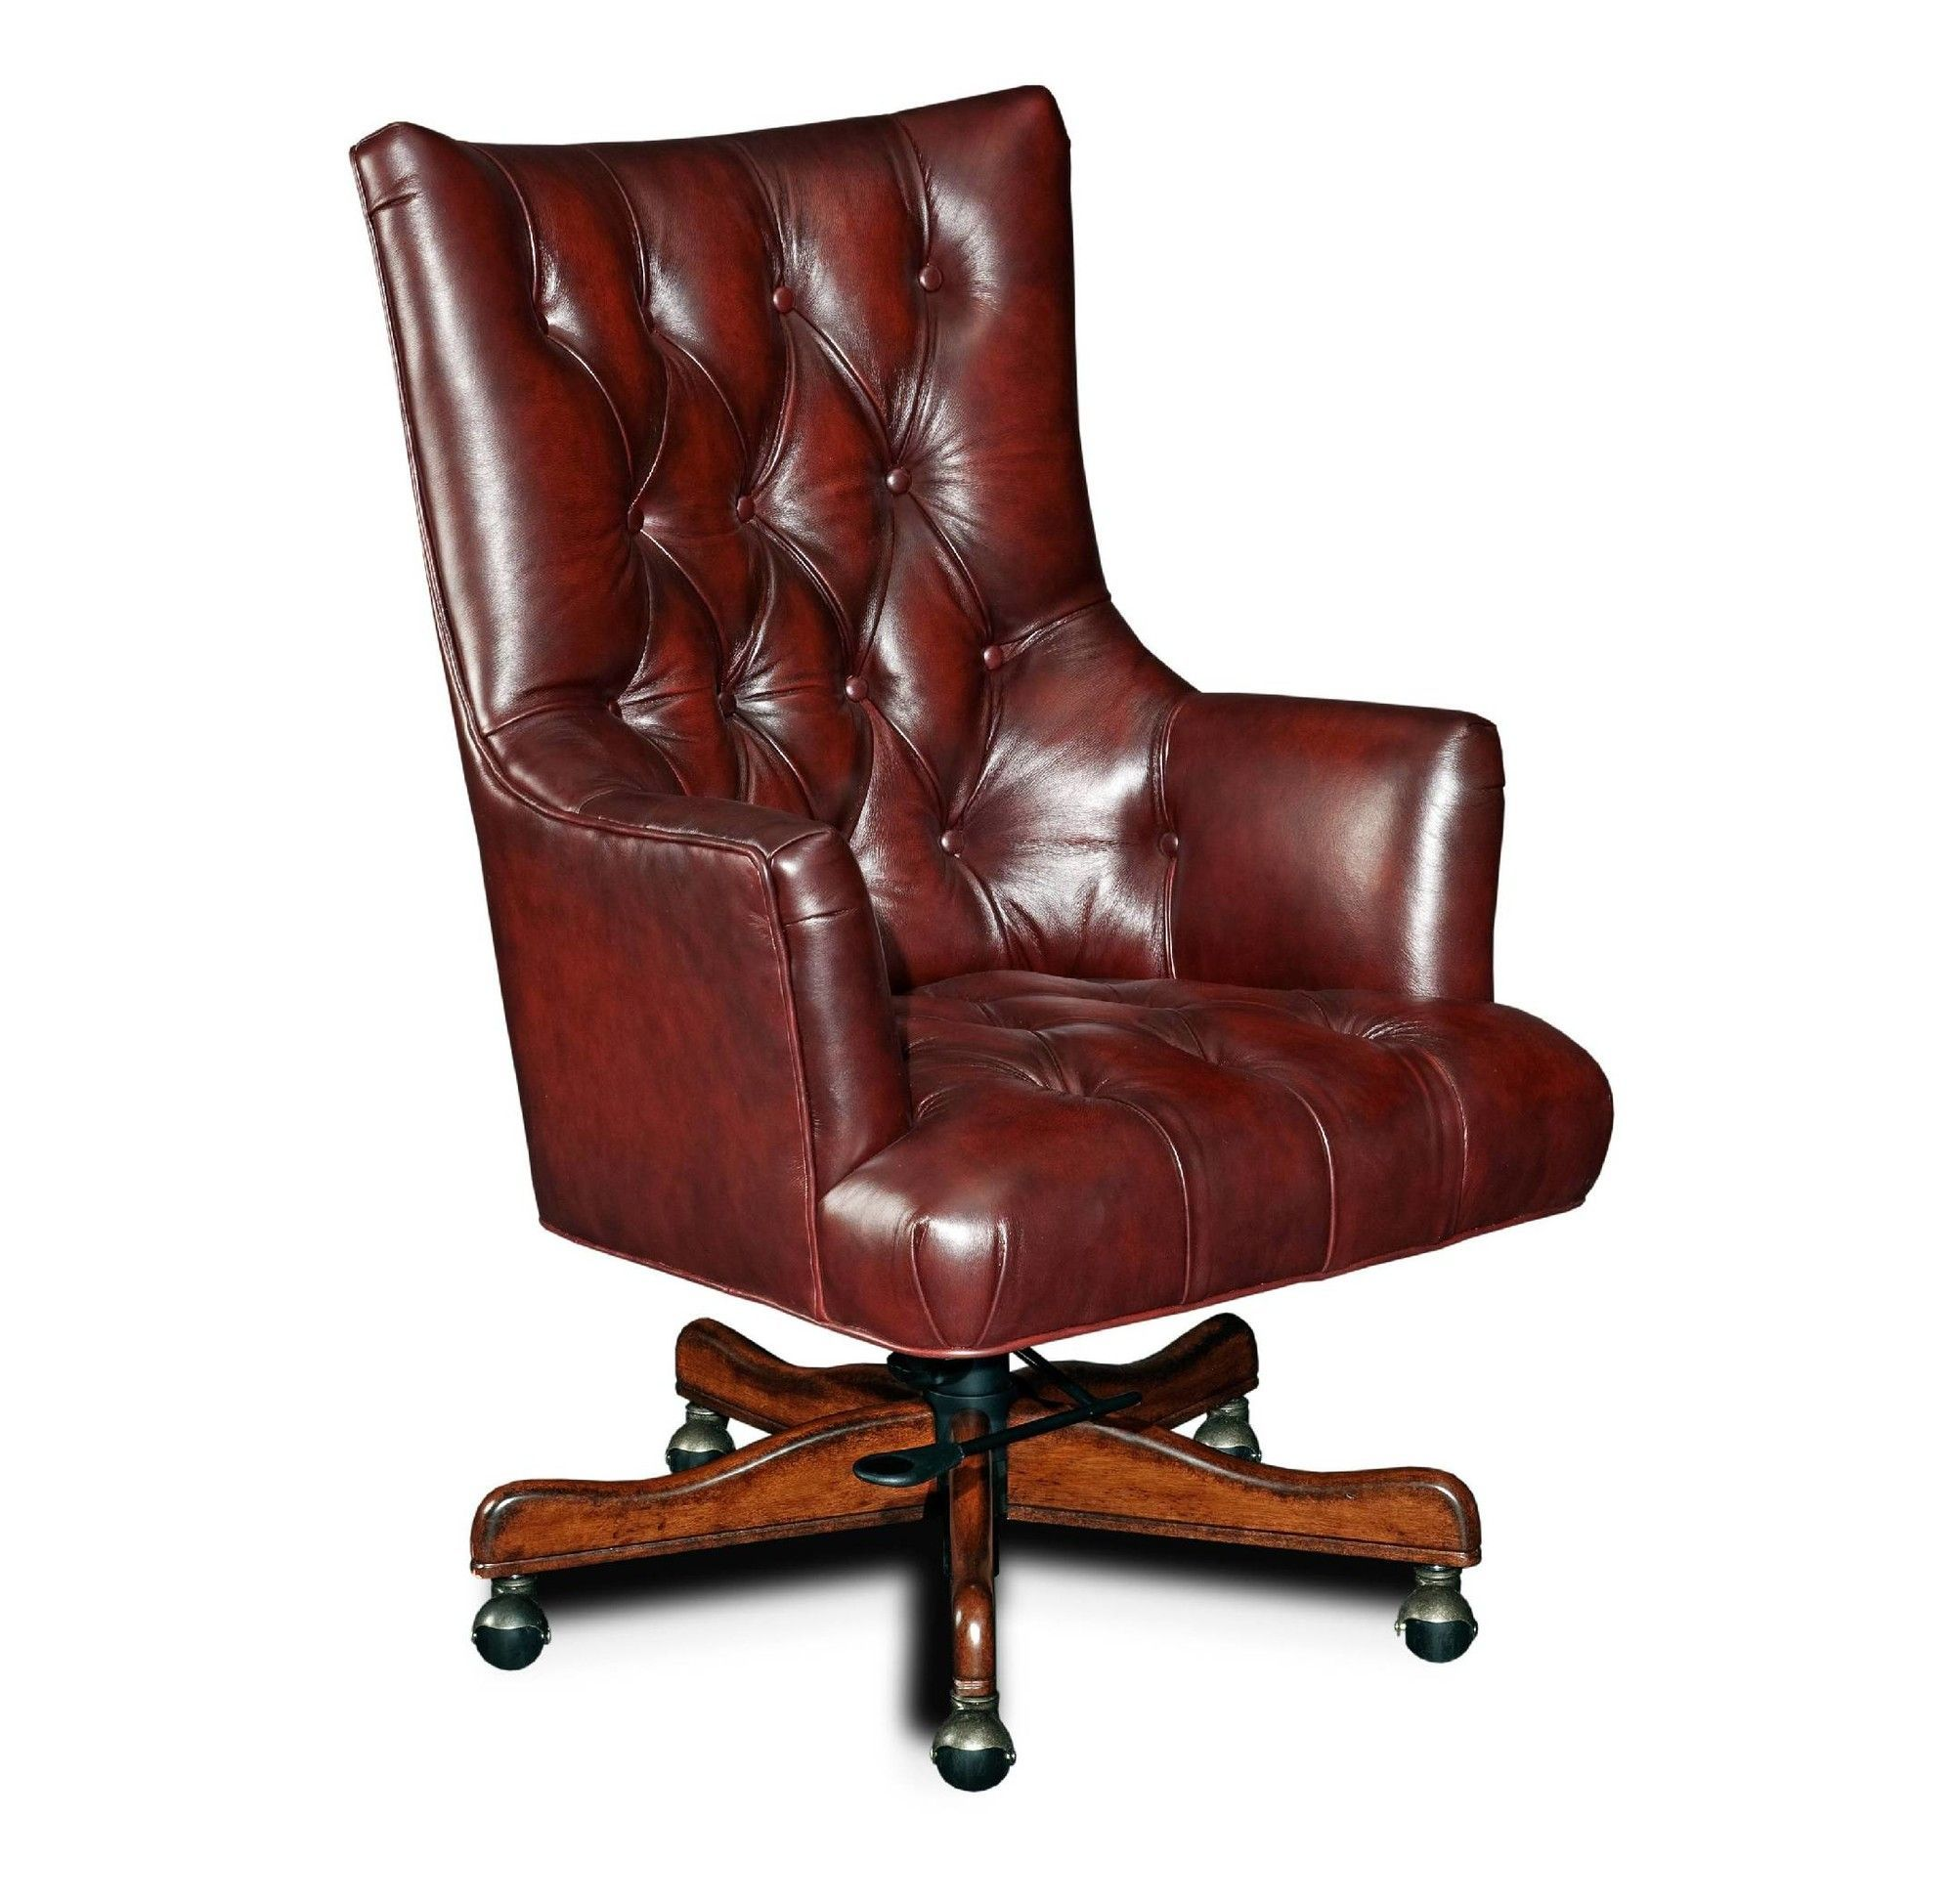 Leather Tilt Swivel Executive Chair Home office chairs